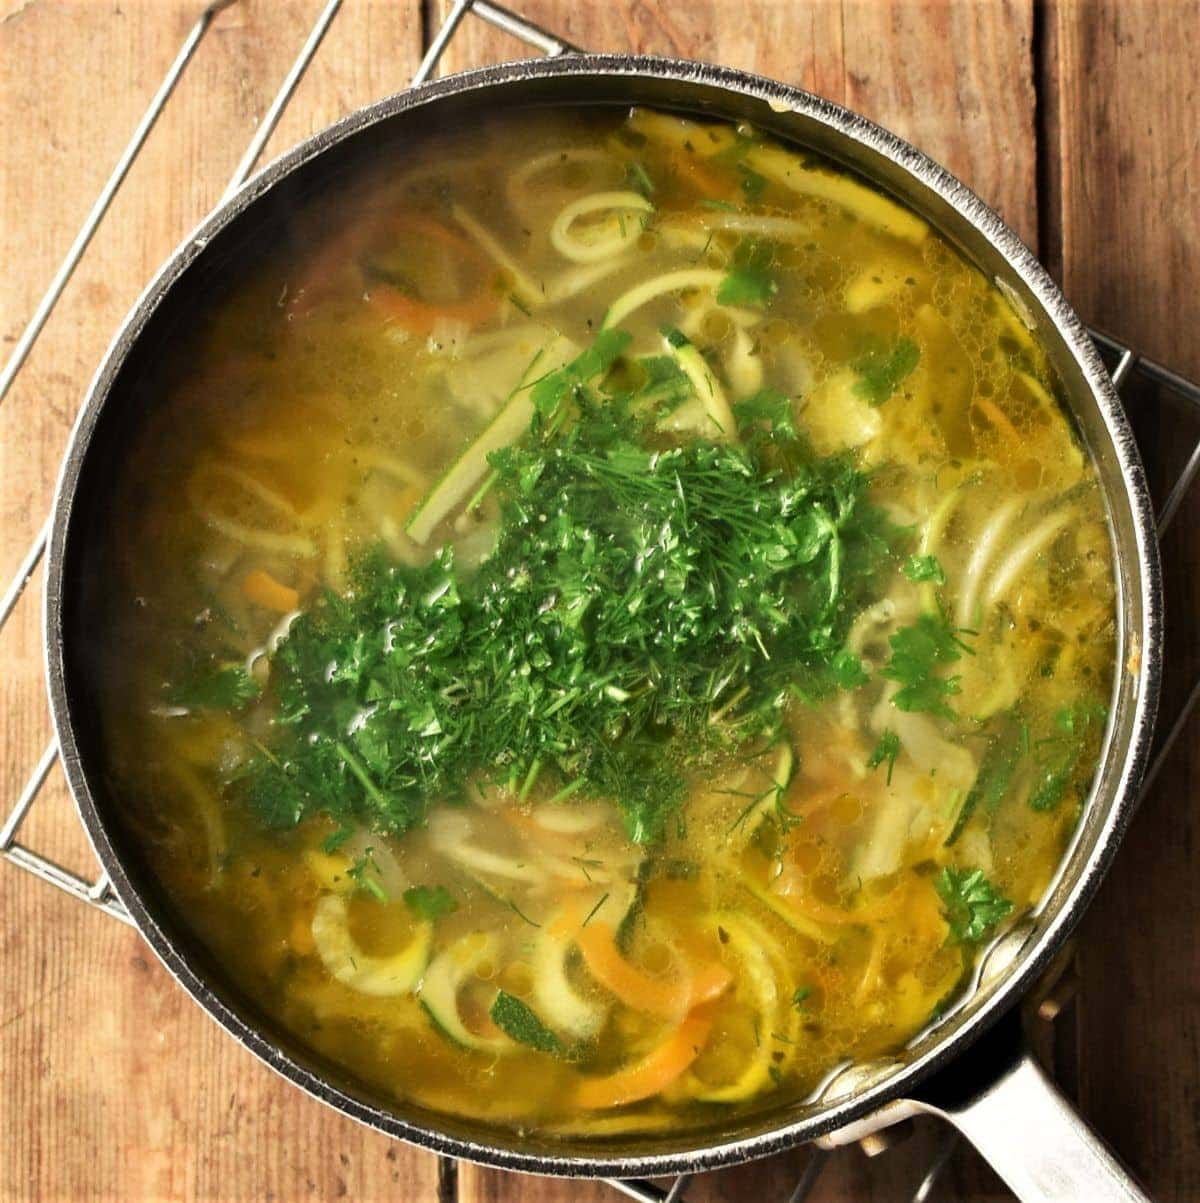 Spiralised vegetable soup with herbs in pot.